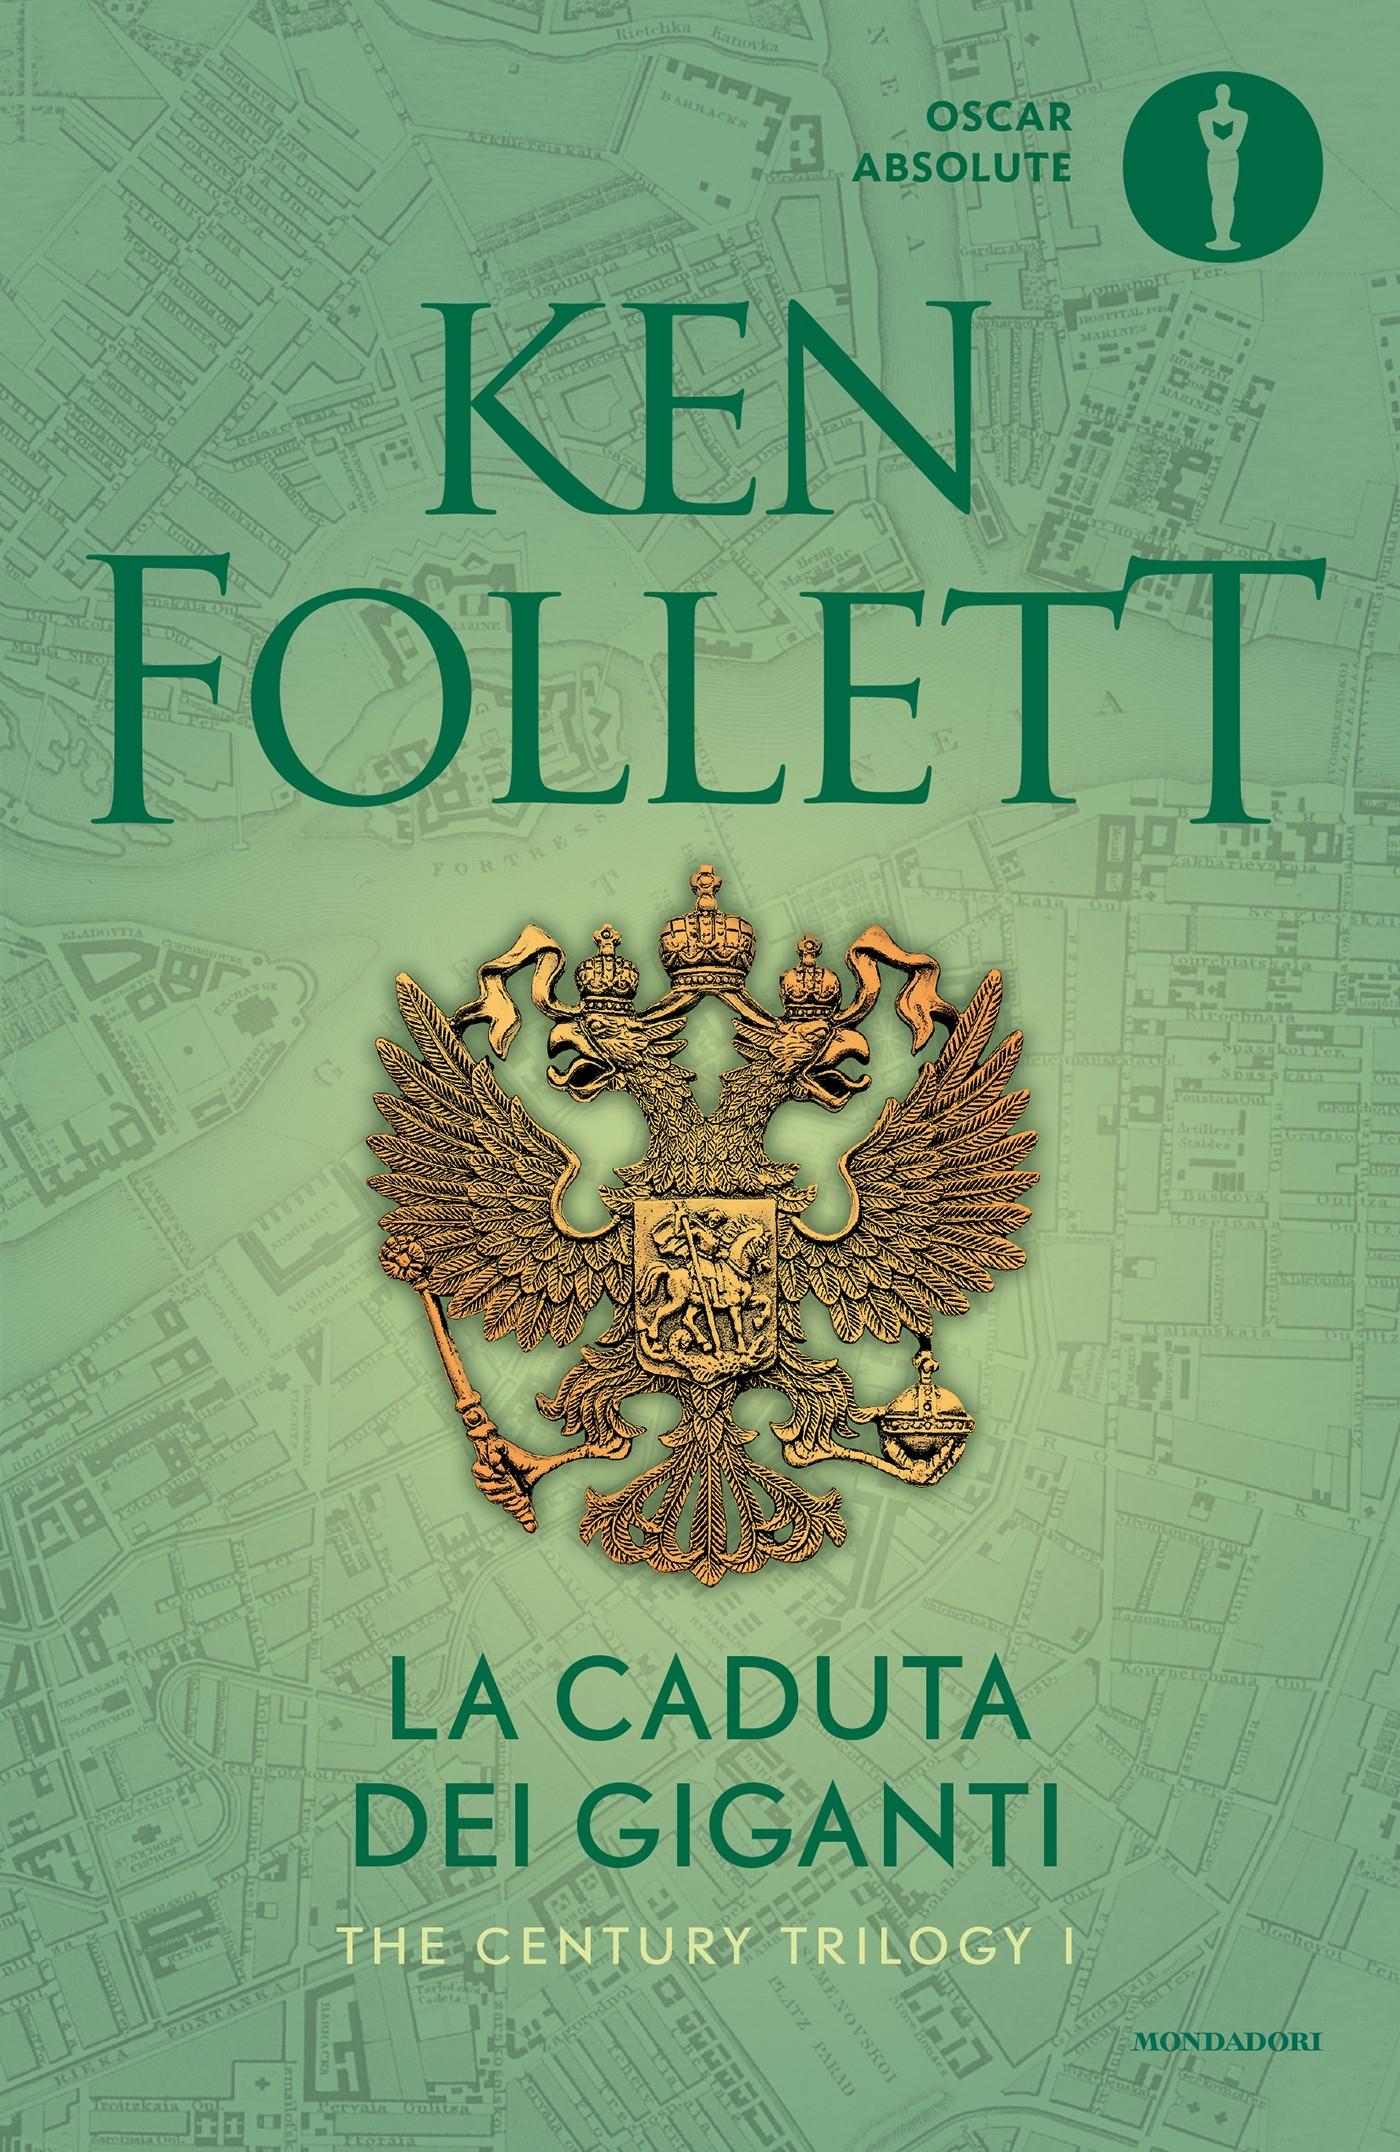 Ken Folet Ultimo Libro La Caduta Dei Giganti Ken Follett Ebook Bookrepublic